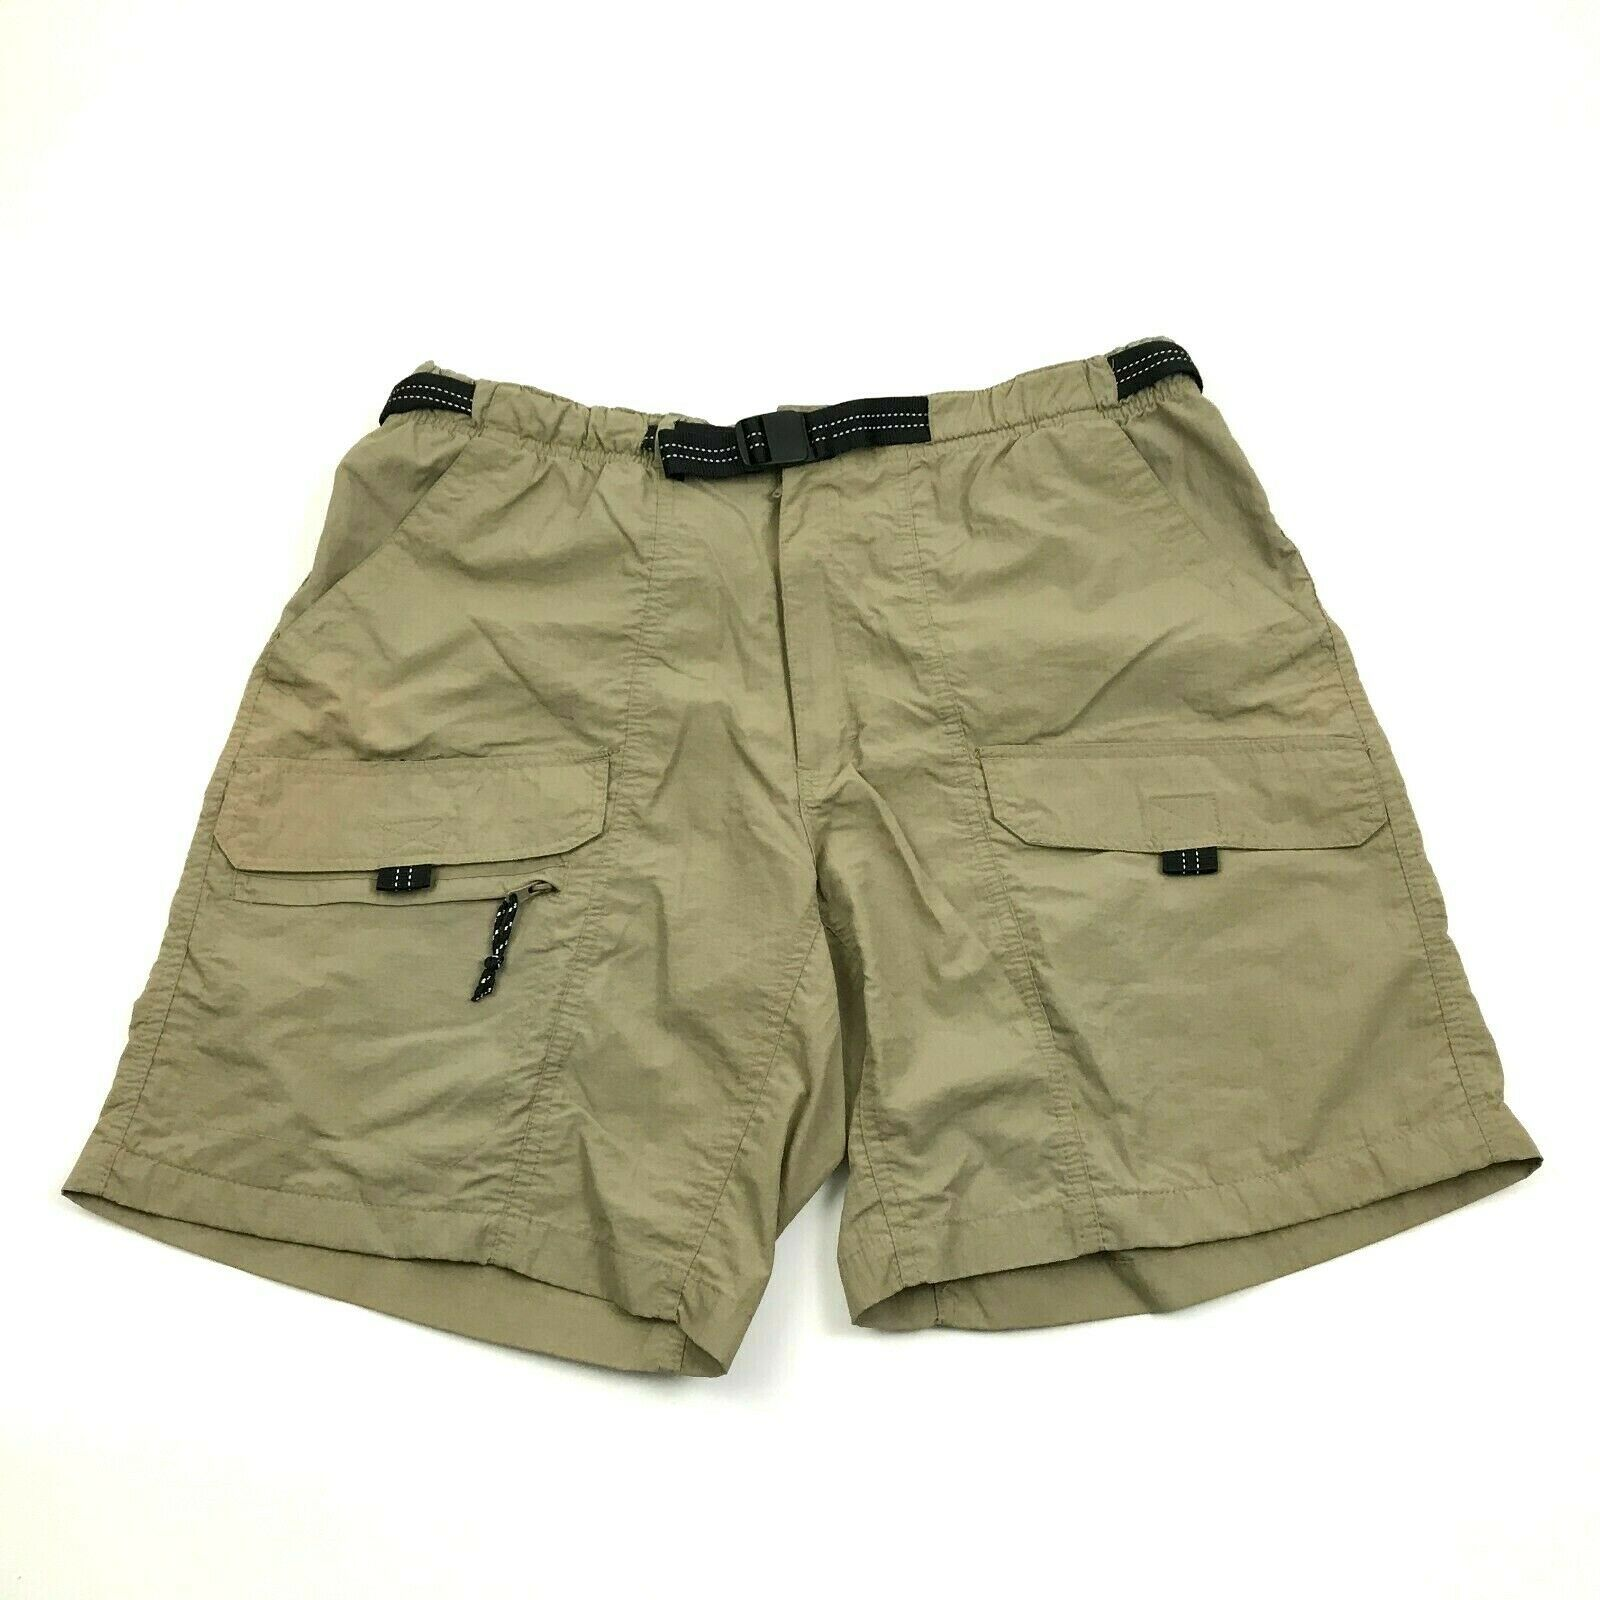 Primary image for Rugged Exposure Hybrid Cargo Shorts Size 34 Waist PACKABLE Nylon WATER RESISTANT